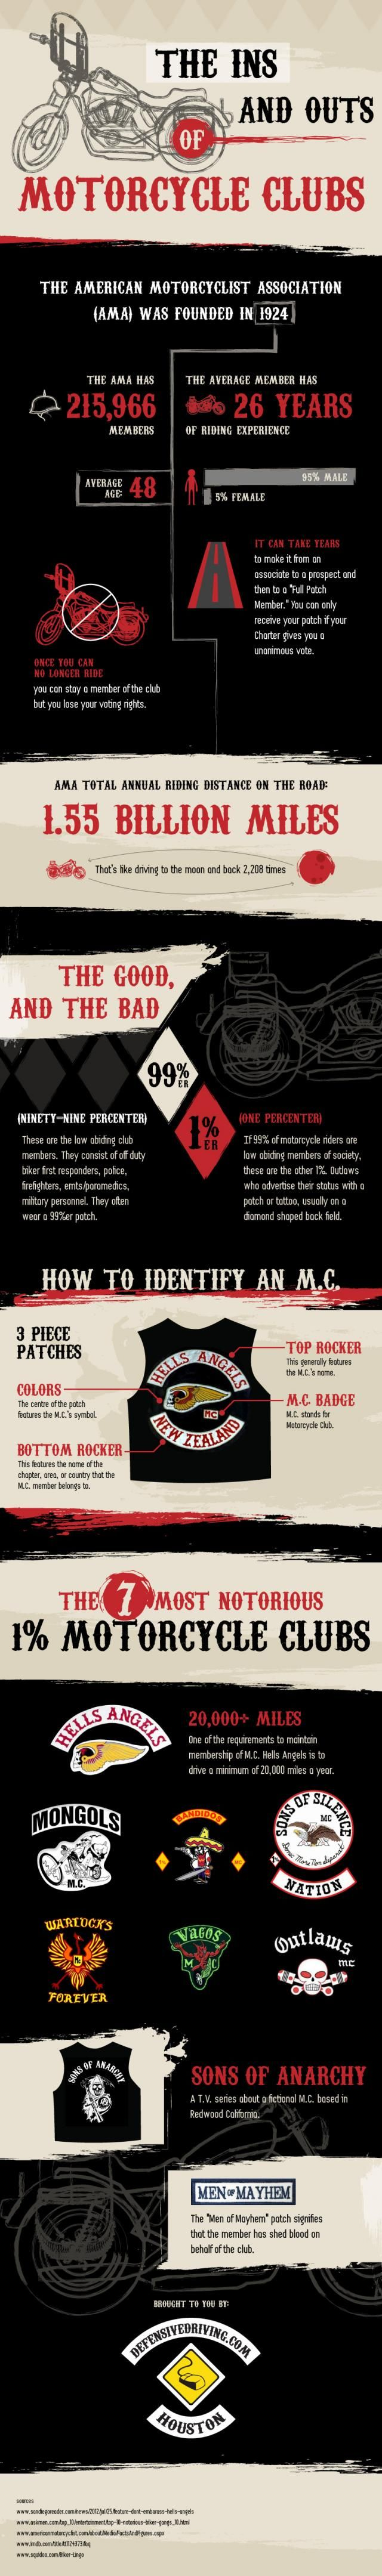 The Ins and Outs of Motorcycle Clubs [INFOGRAPHIC] | defensivedriving.com